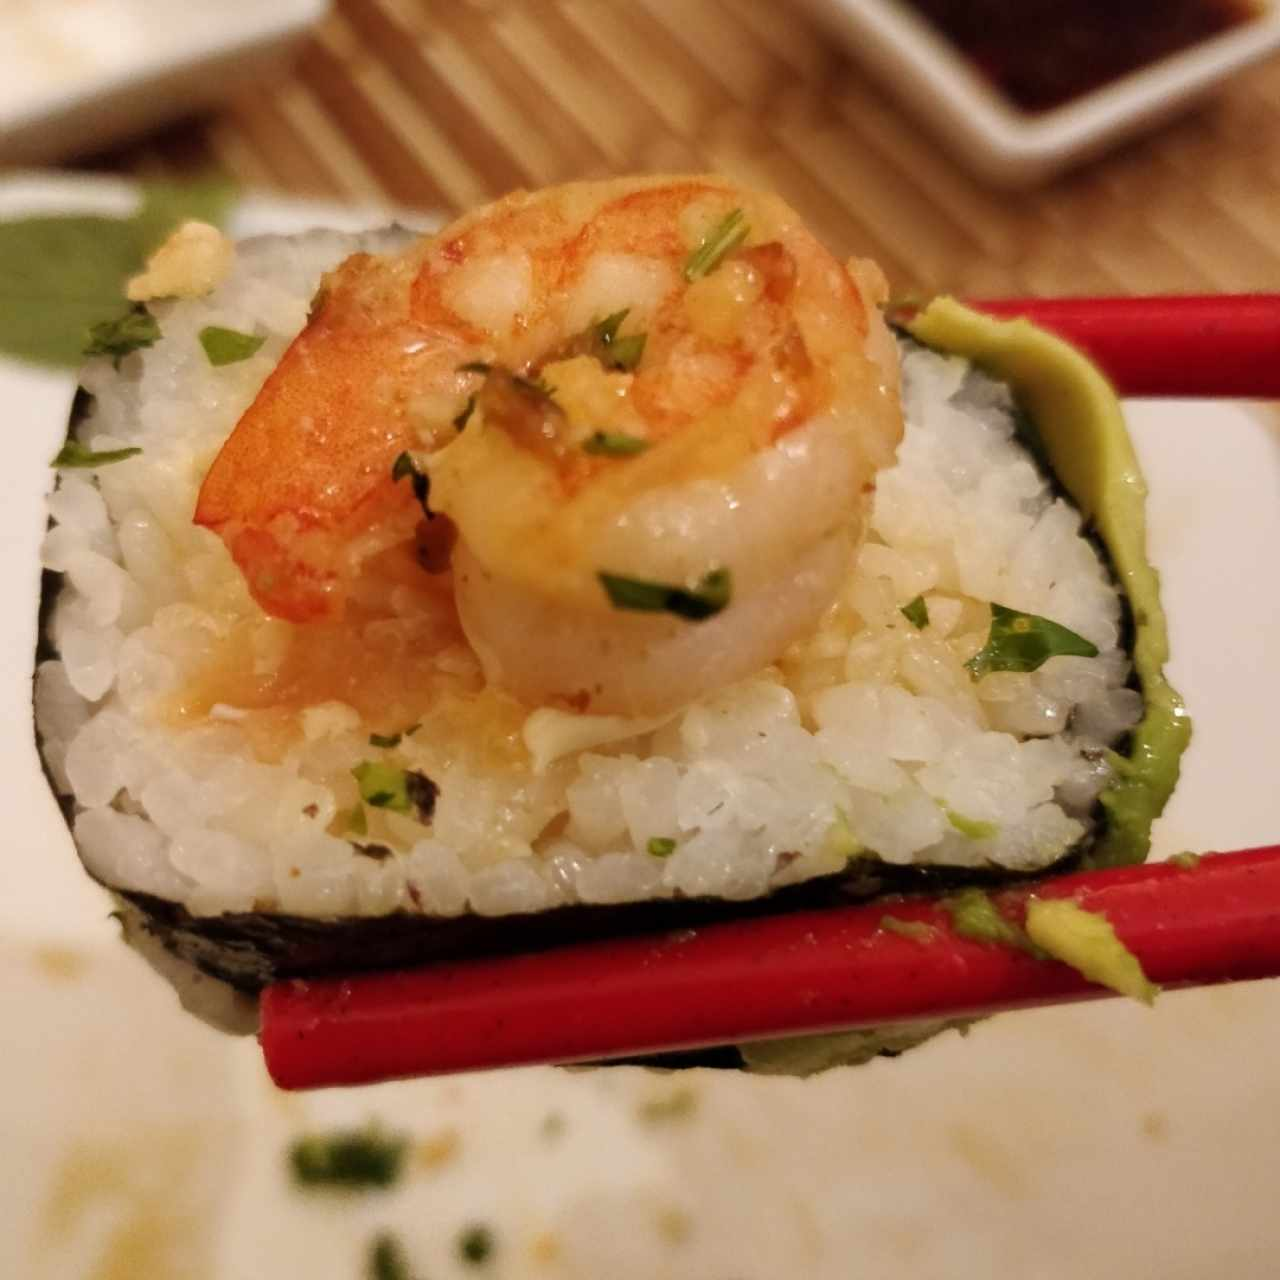 Sushi Rolls - Dragon Roll